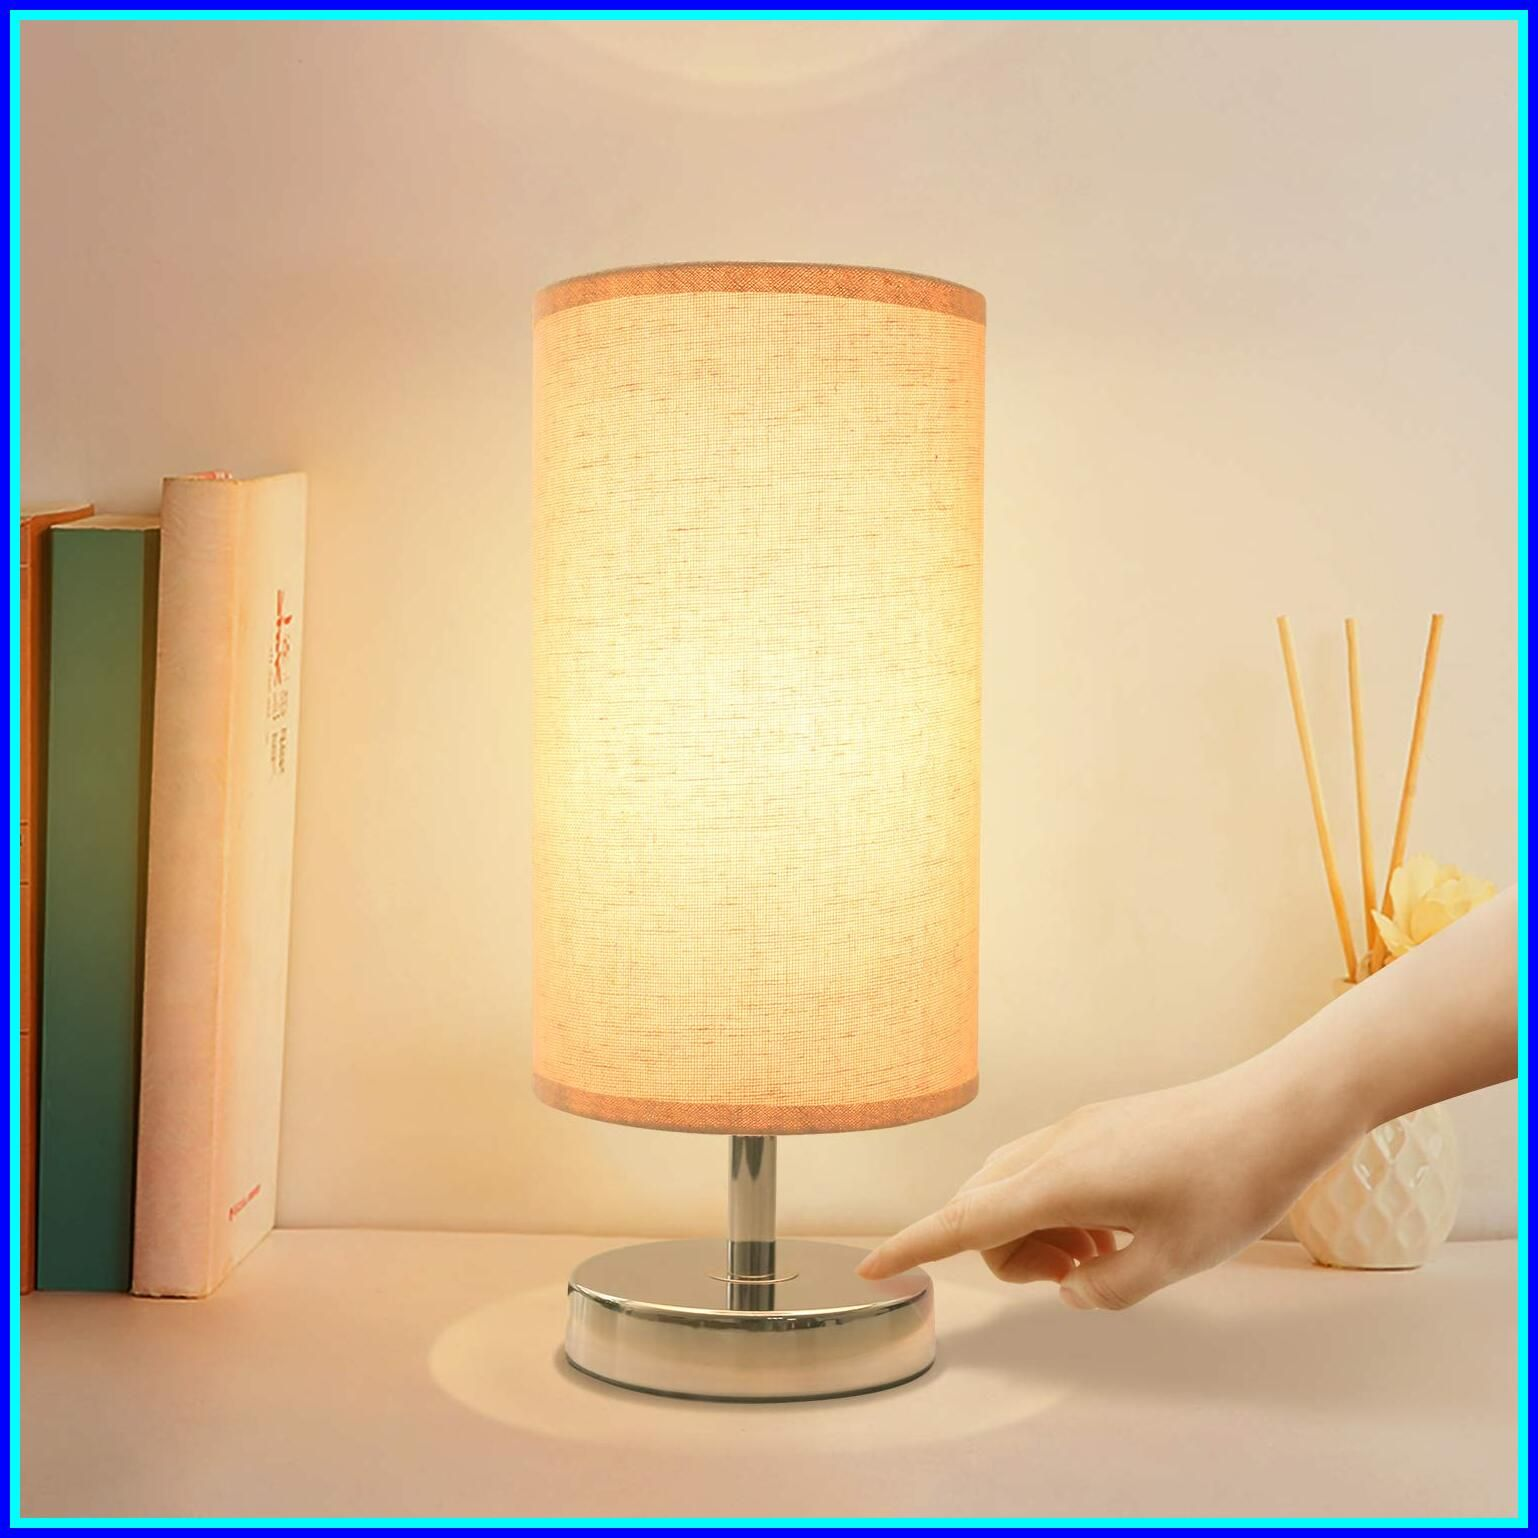 71 Reference Of Touch Table Lamps Amazon In 2020 Touch Table Lamps Bedside Lamp Modern Touch Lamp